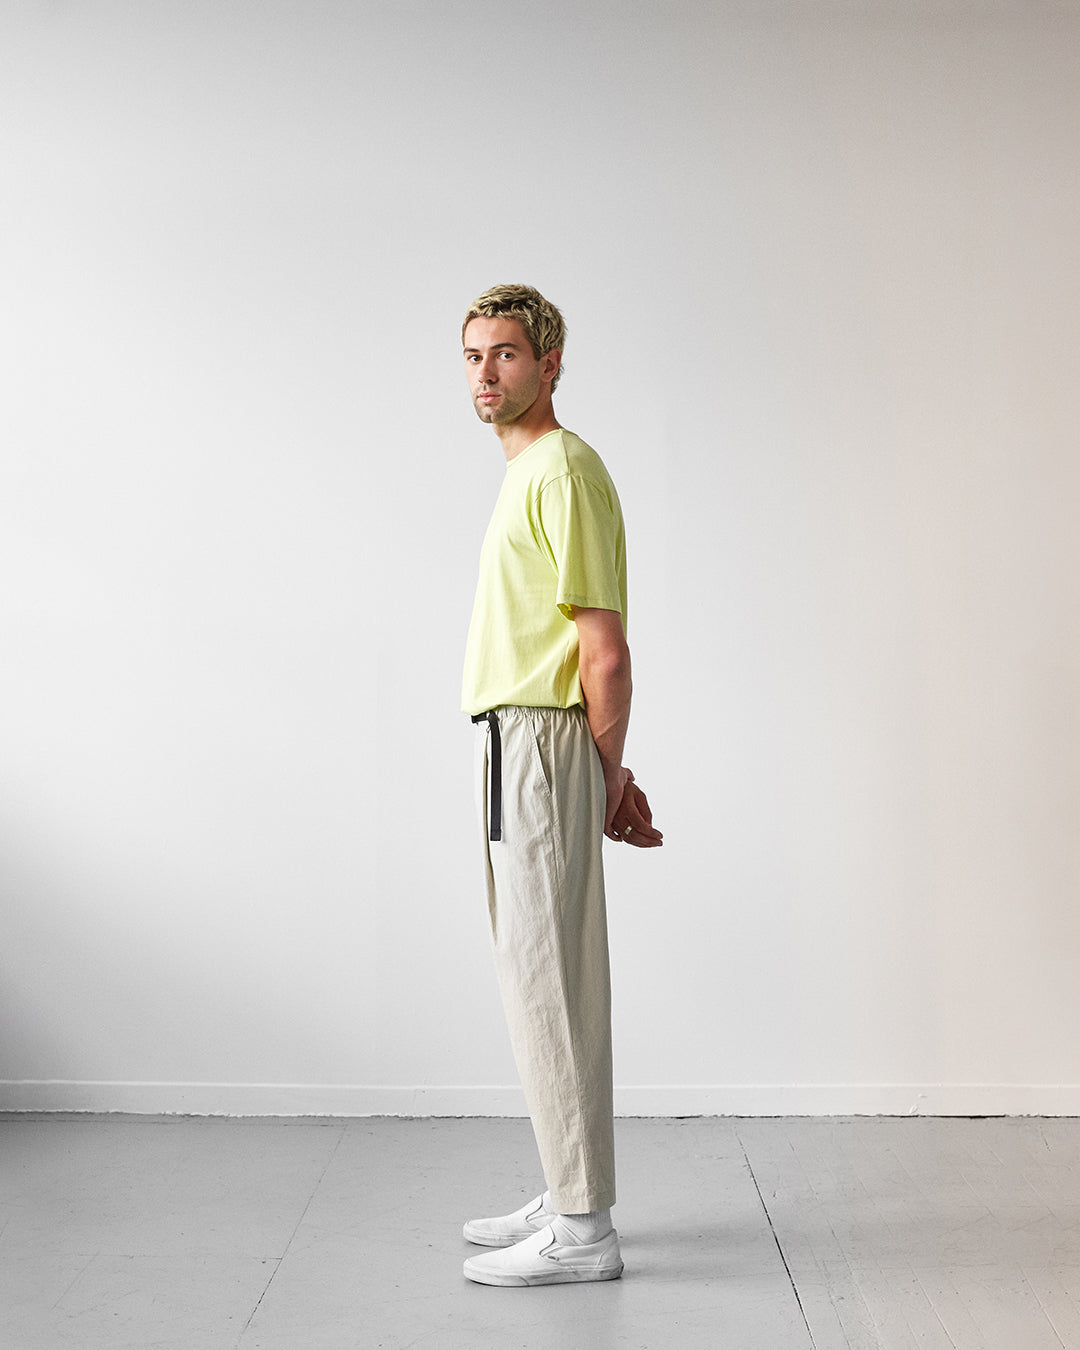 pants elastic green sage unisex genderless sunset veri montreal clothing